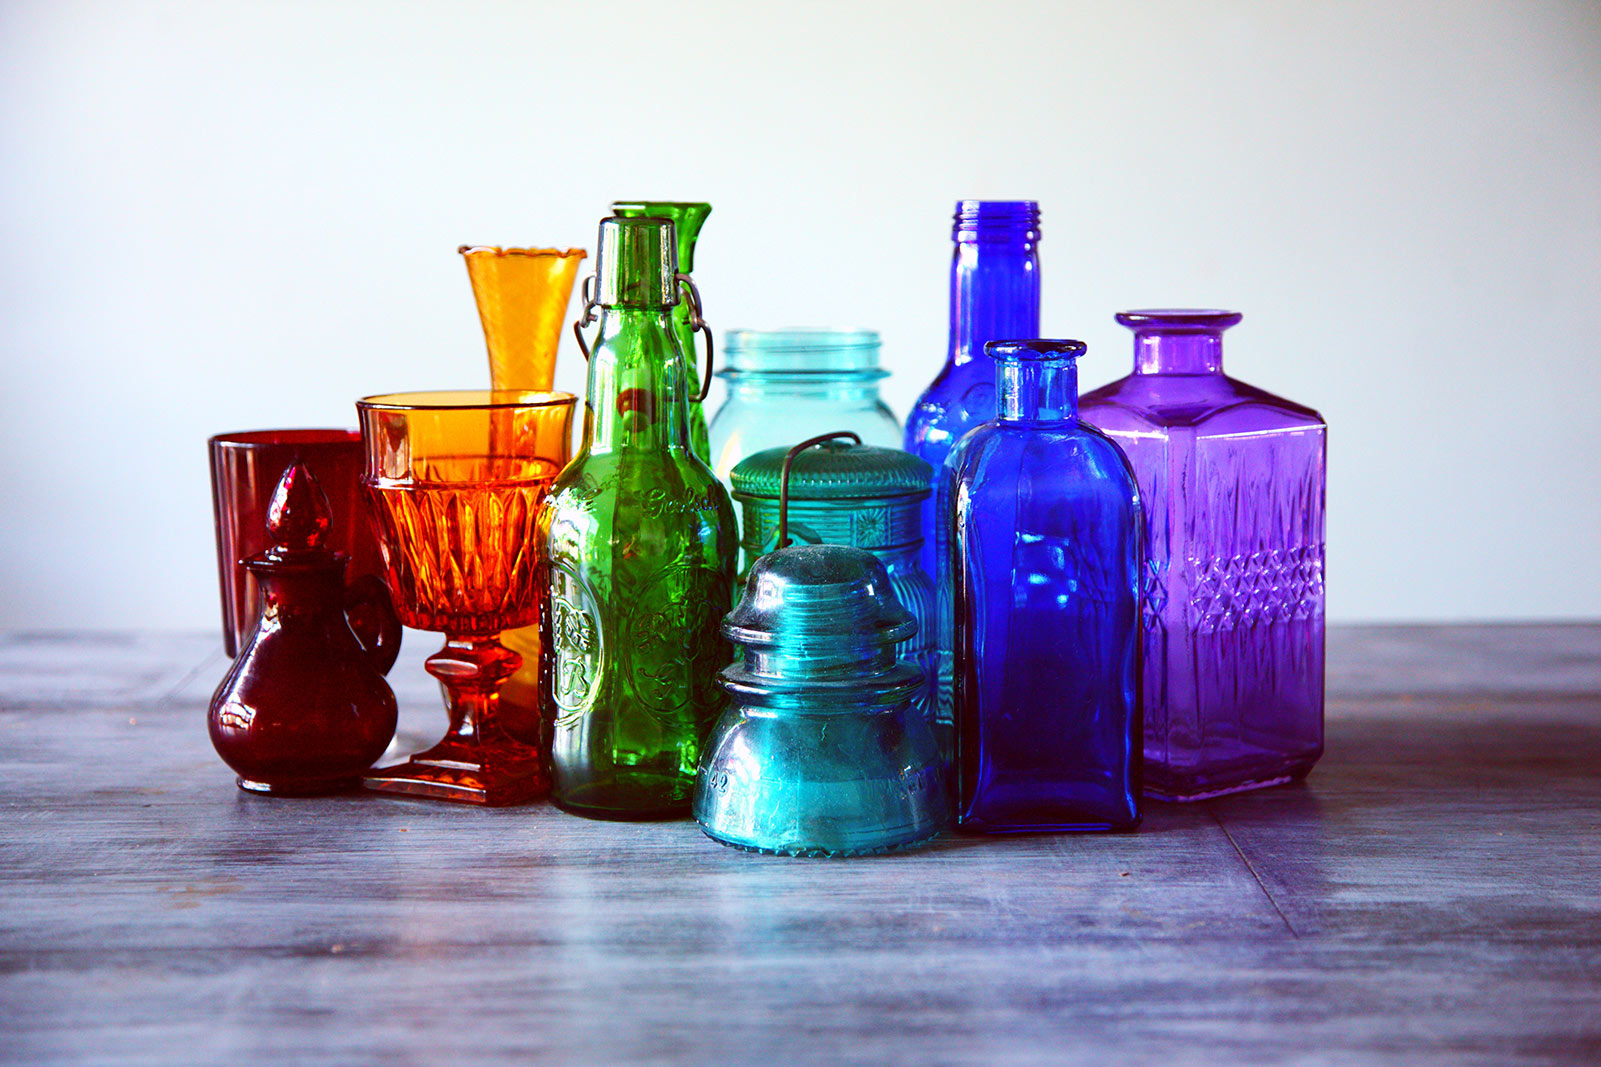 a group of colored glass jars and containers